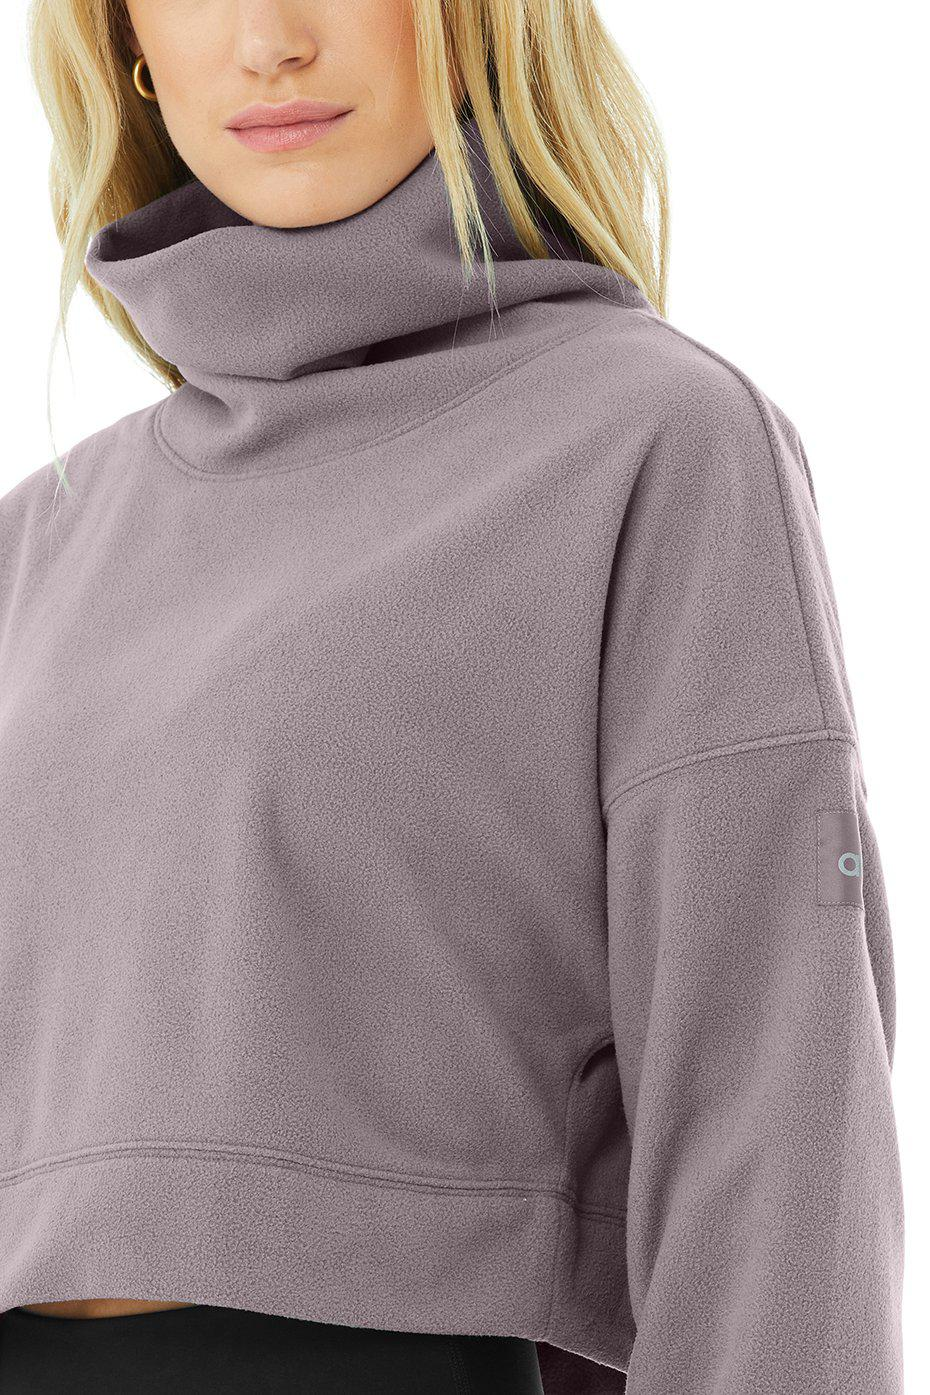 Cropped Warm Up Pullover - Purple Dusk 4